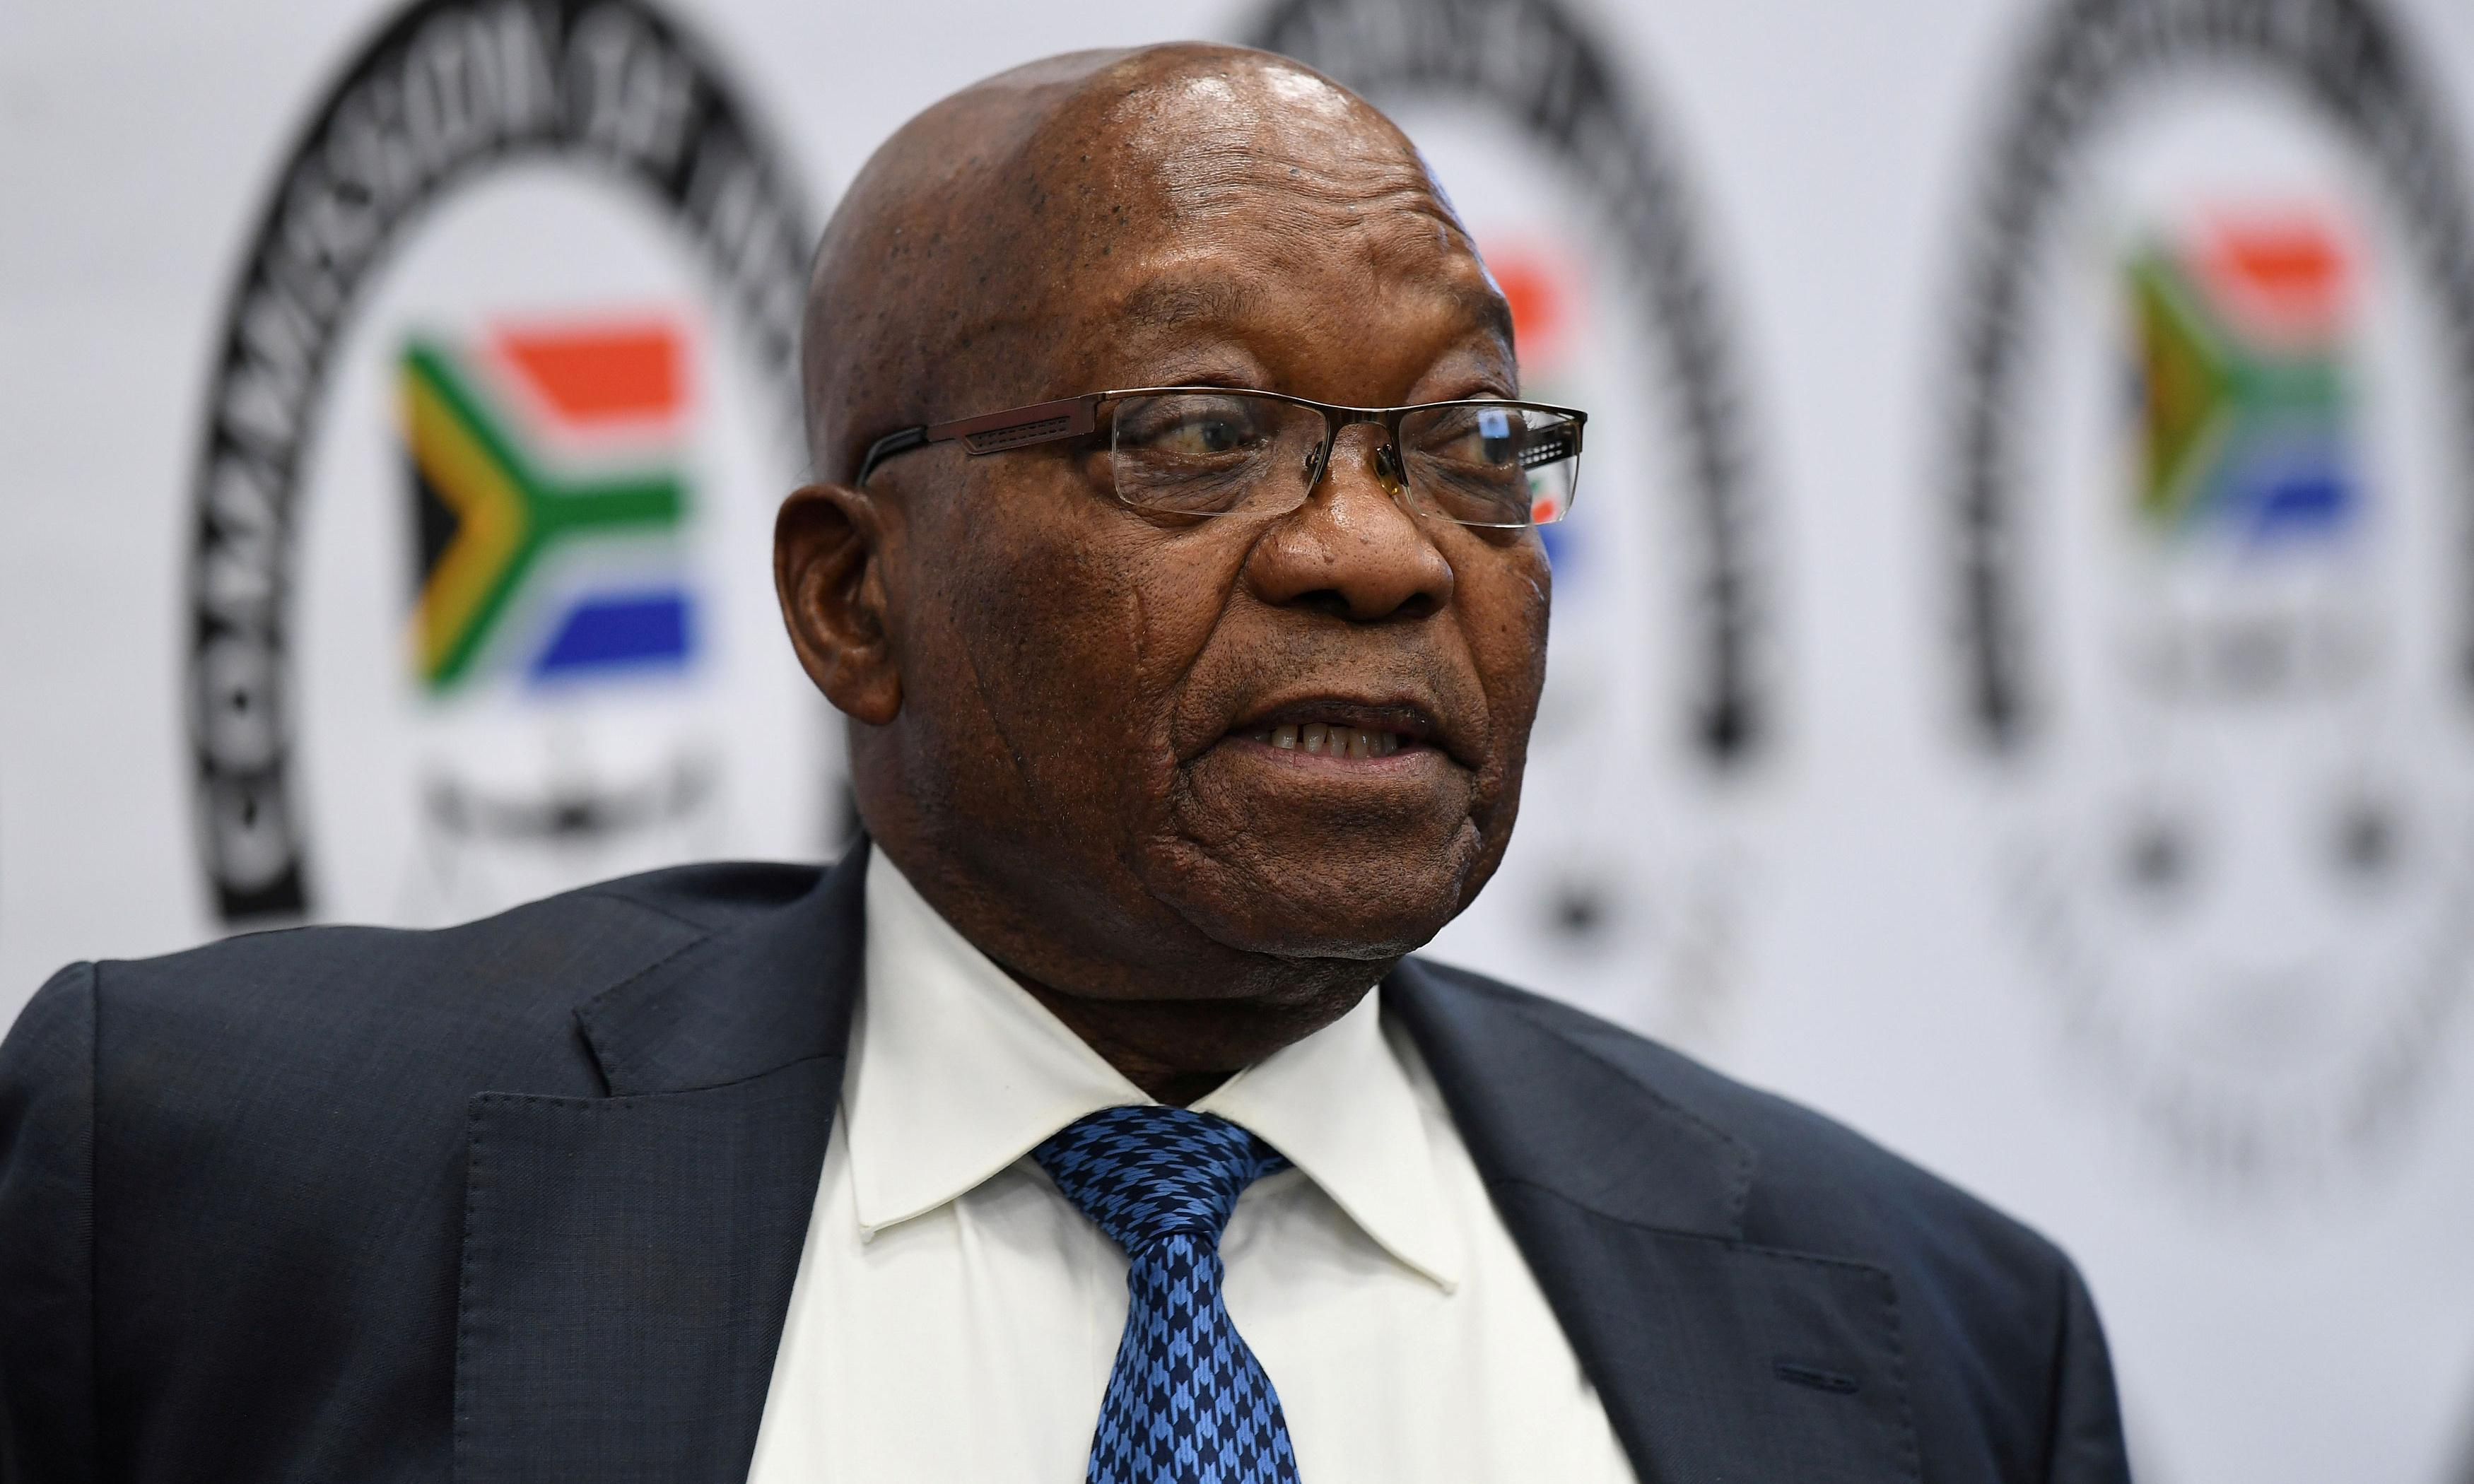 Jacob Zuma refuses to testify before major corruption inquiry